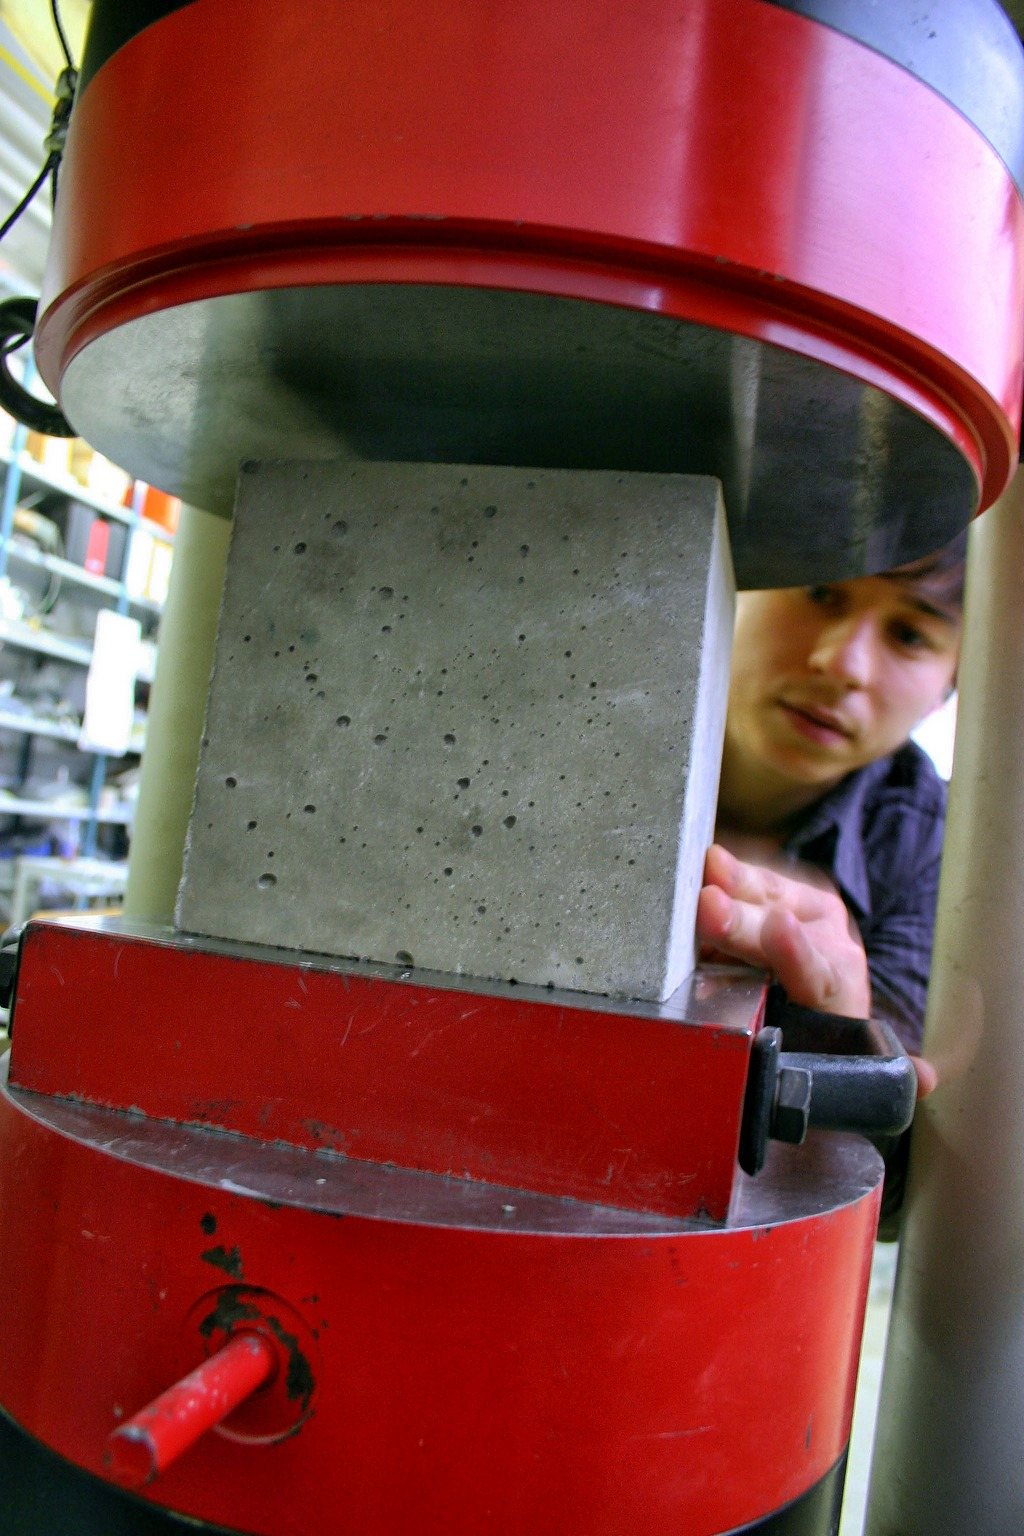 Concrete Component And Method Tests